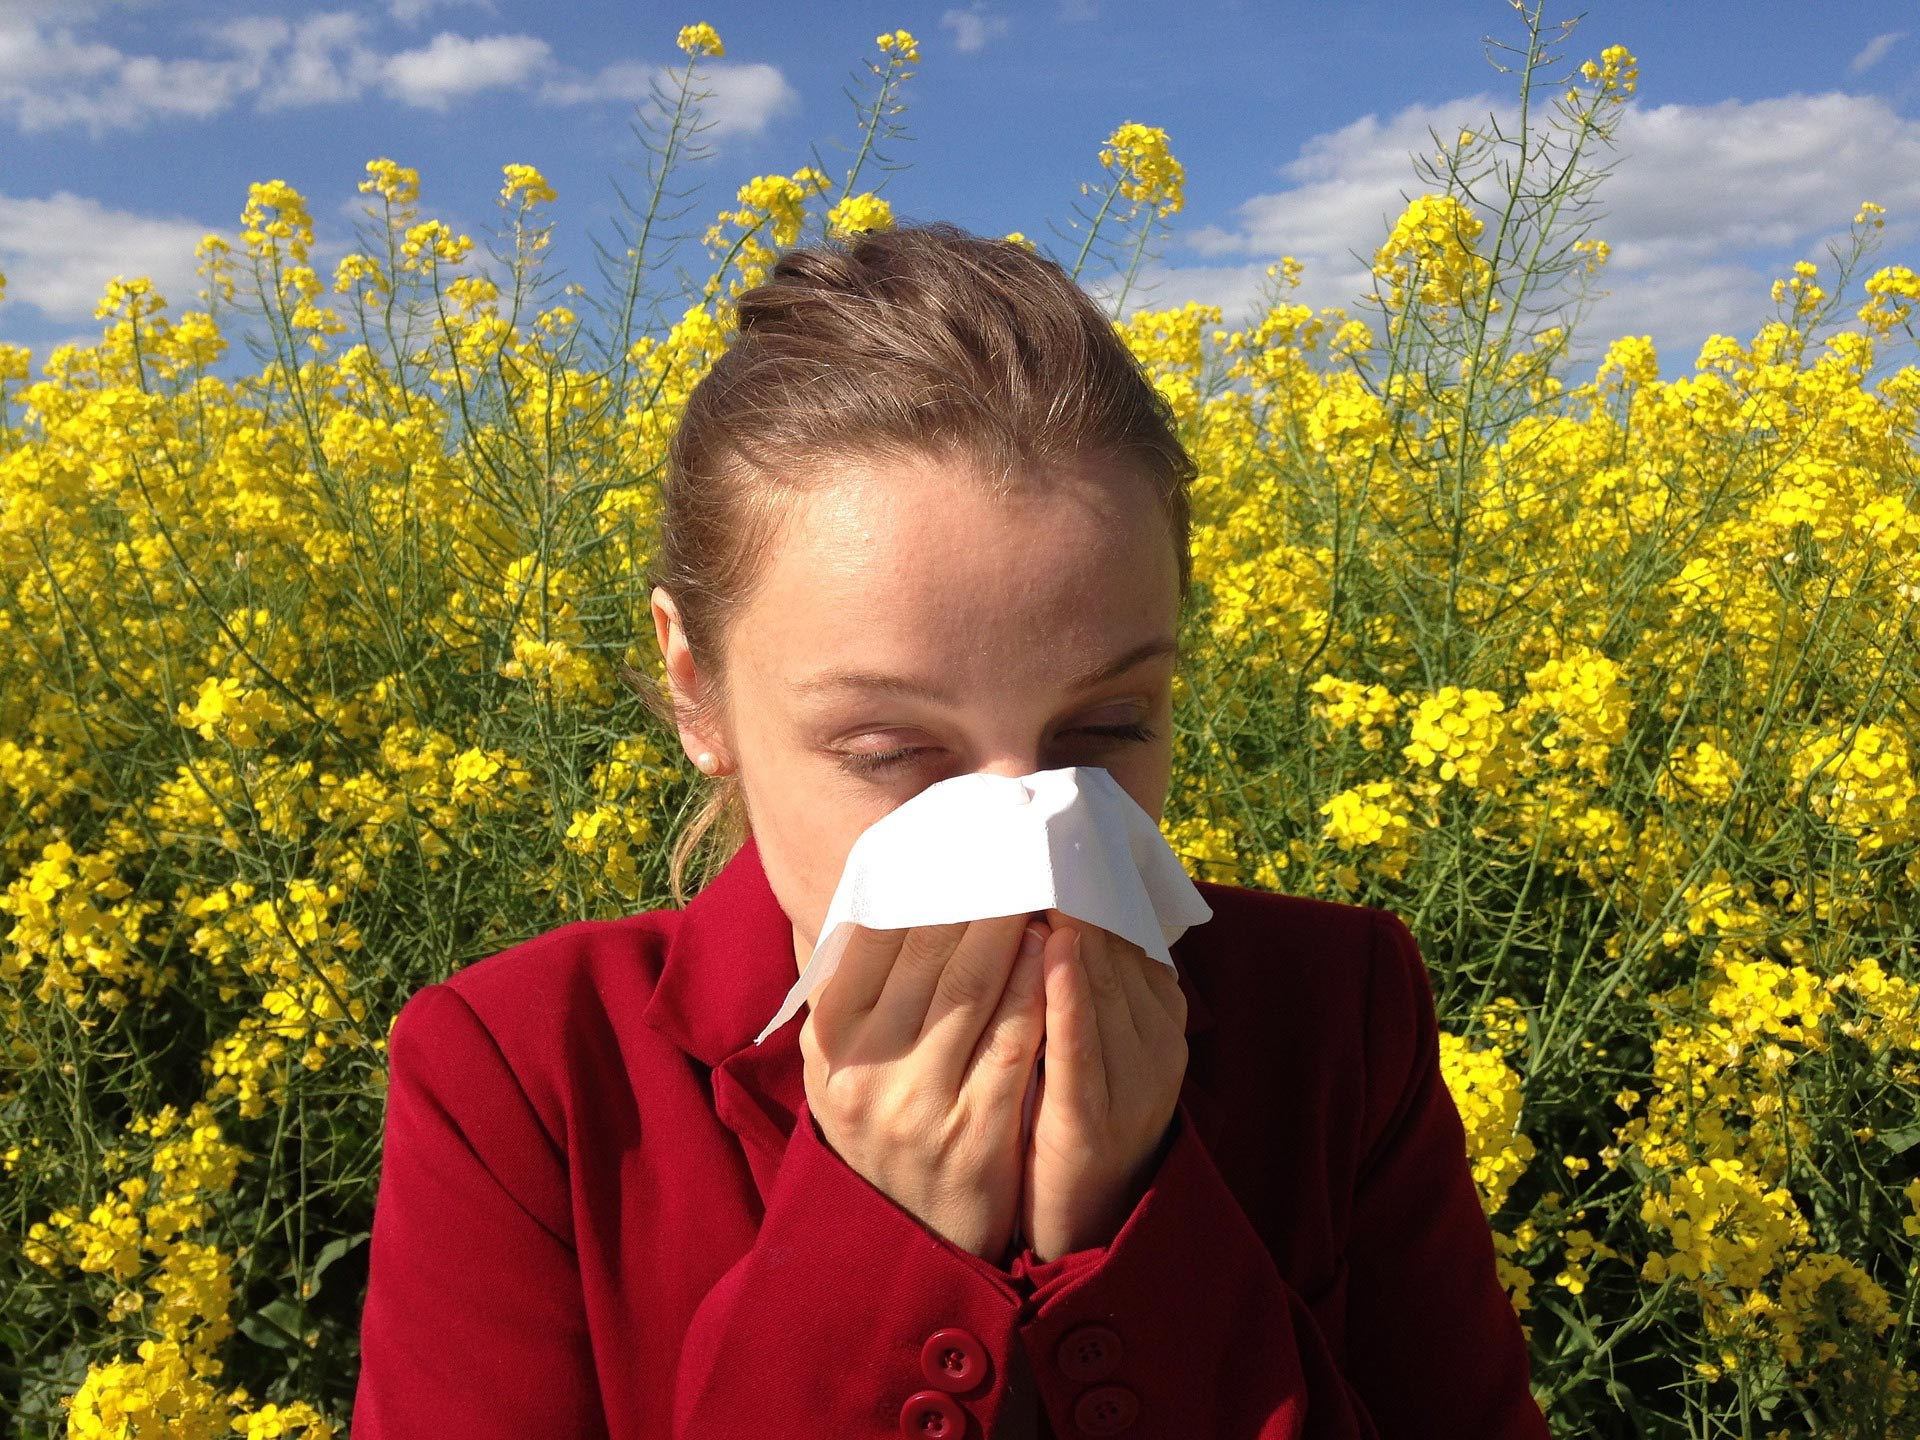 The 'hay fever' season is nearly with us!